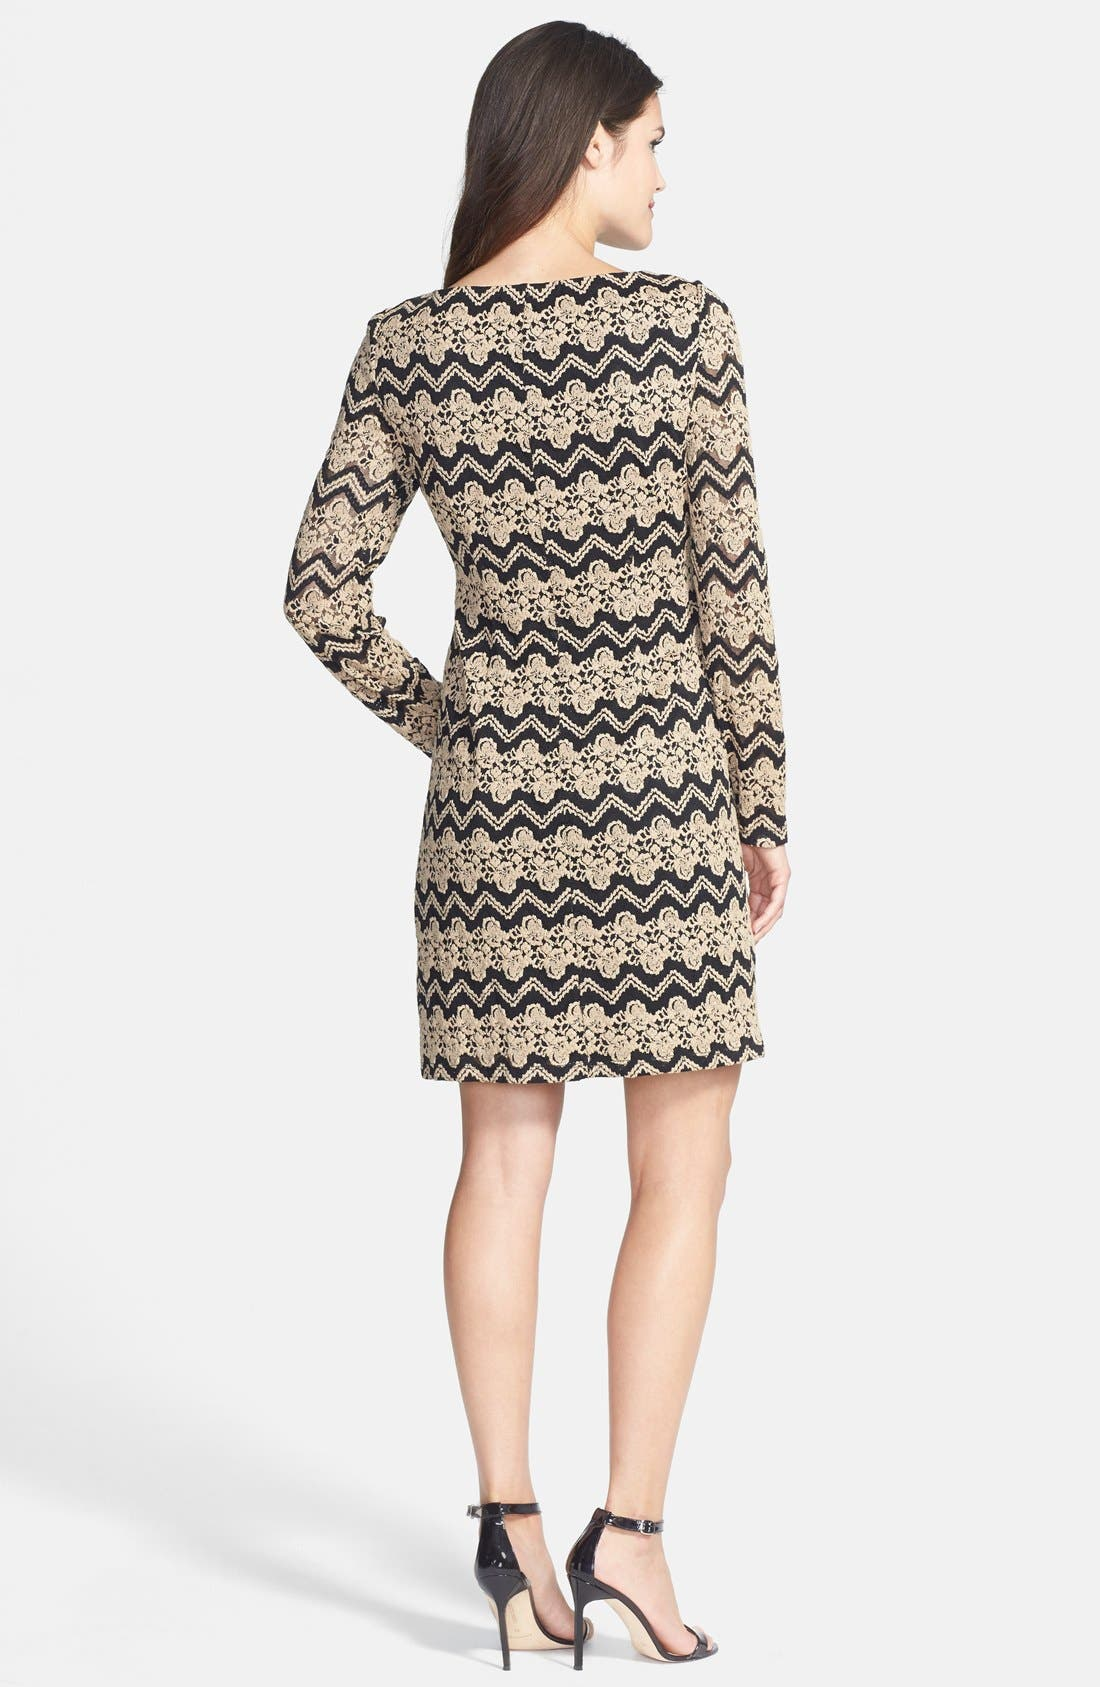 ELIZA J, Chevron Lace Shift Dress, Alternate thumbnail 3, color, 001